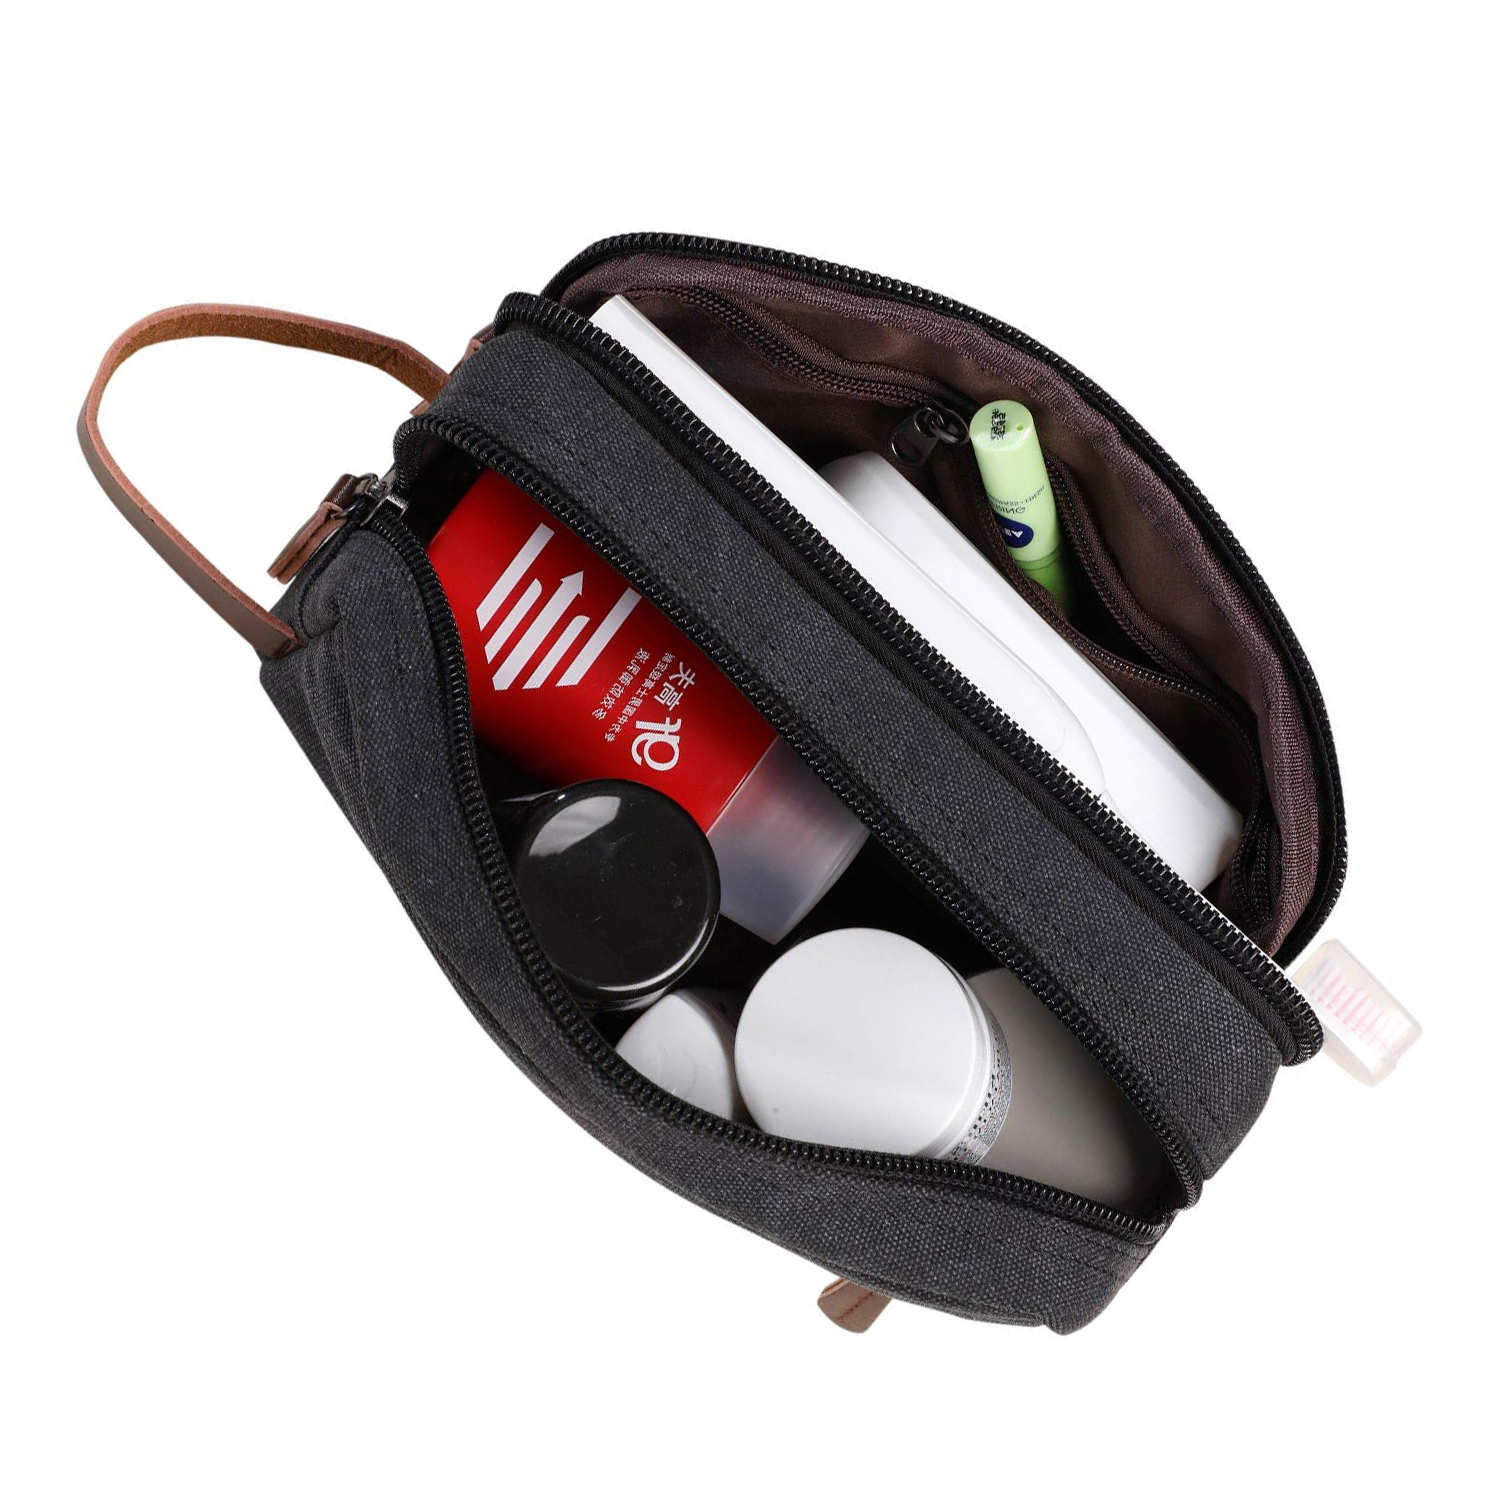 Mens Travel Toiletry Bag Canvas Leather Cosmetic Makeup Organizer Shaving  Dopp Kits with Double Compartments (Black) - Walmart.com ae32303de6f15